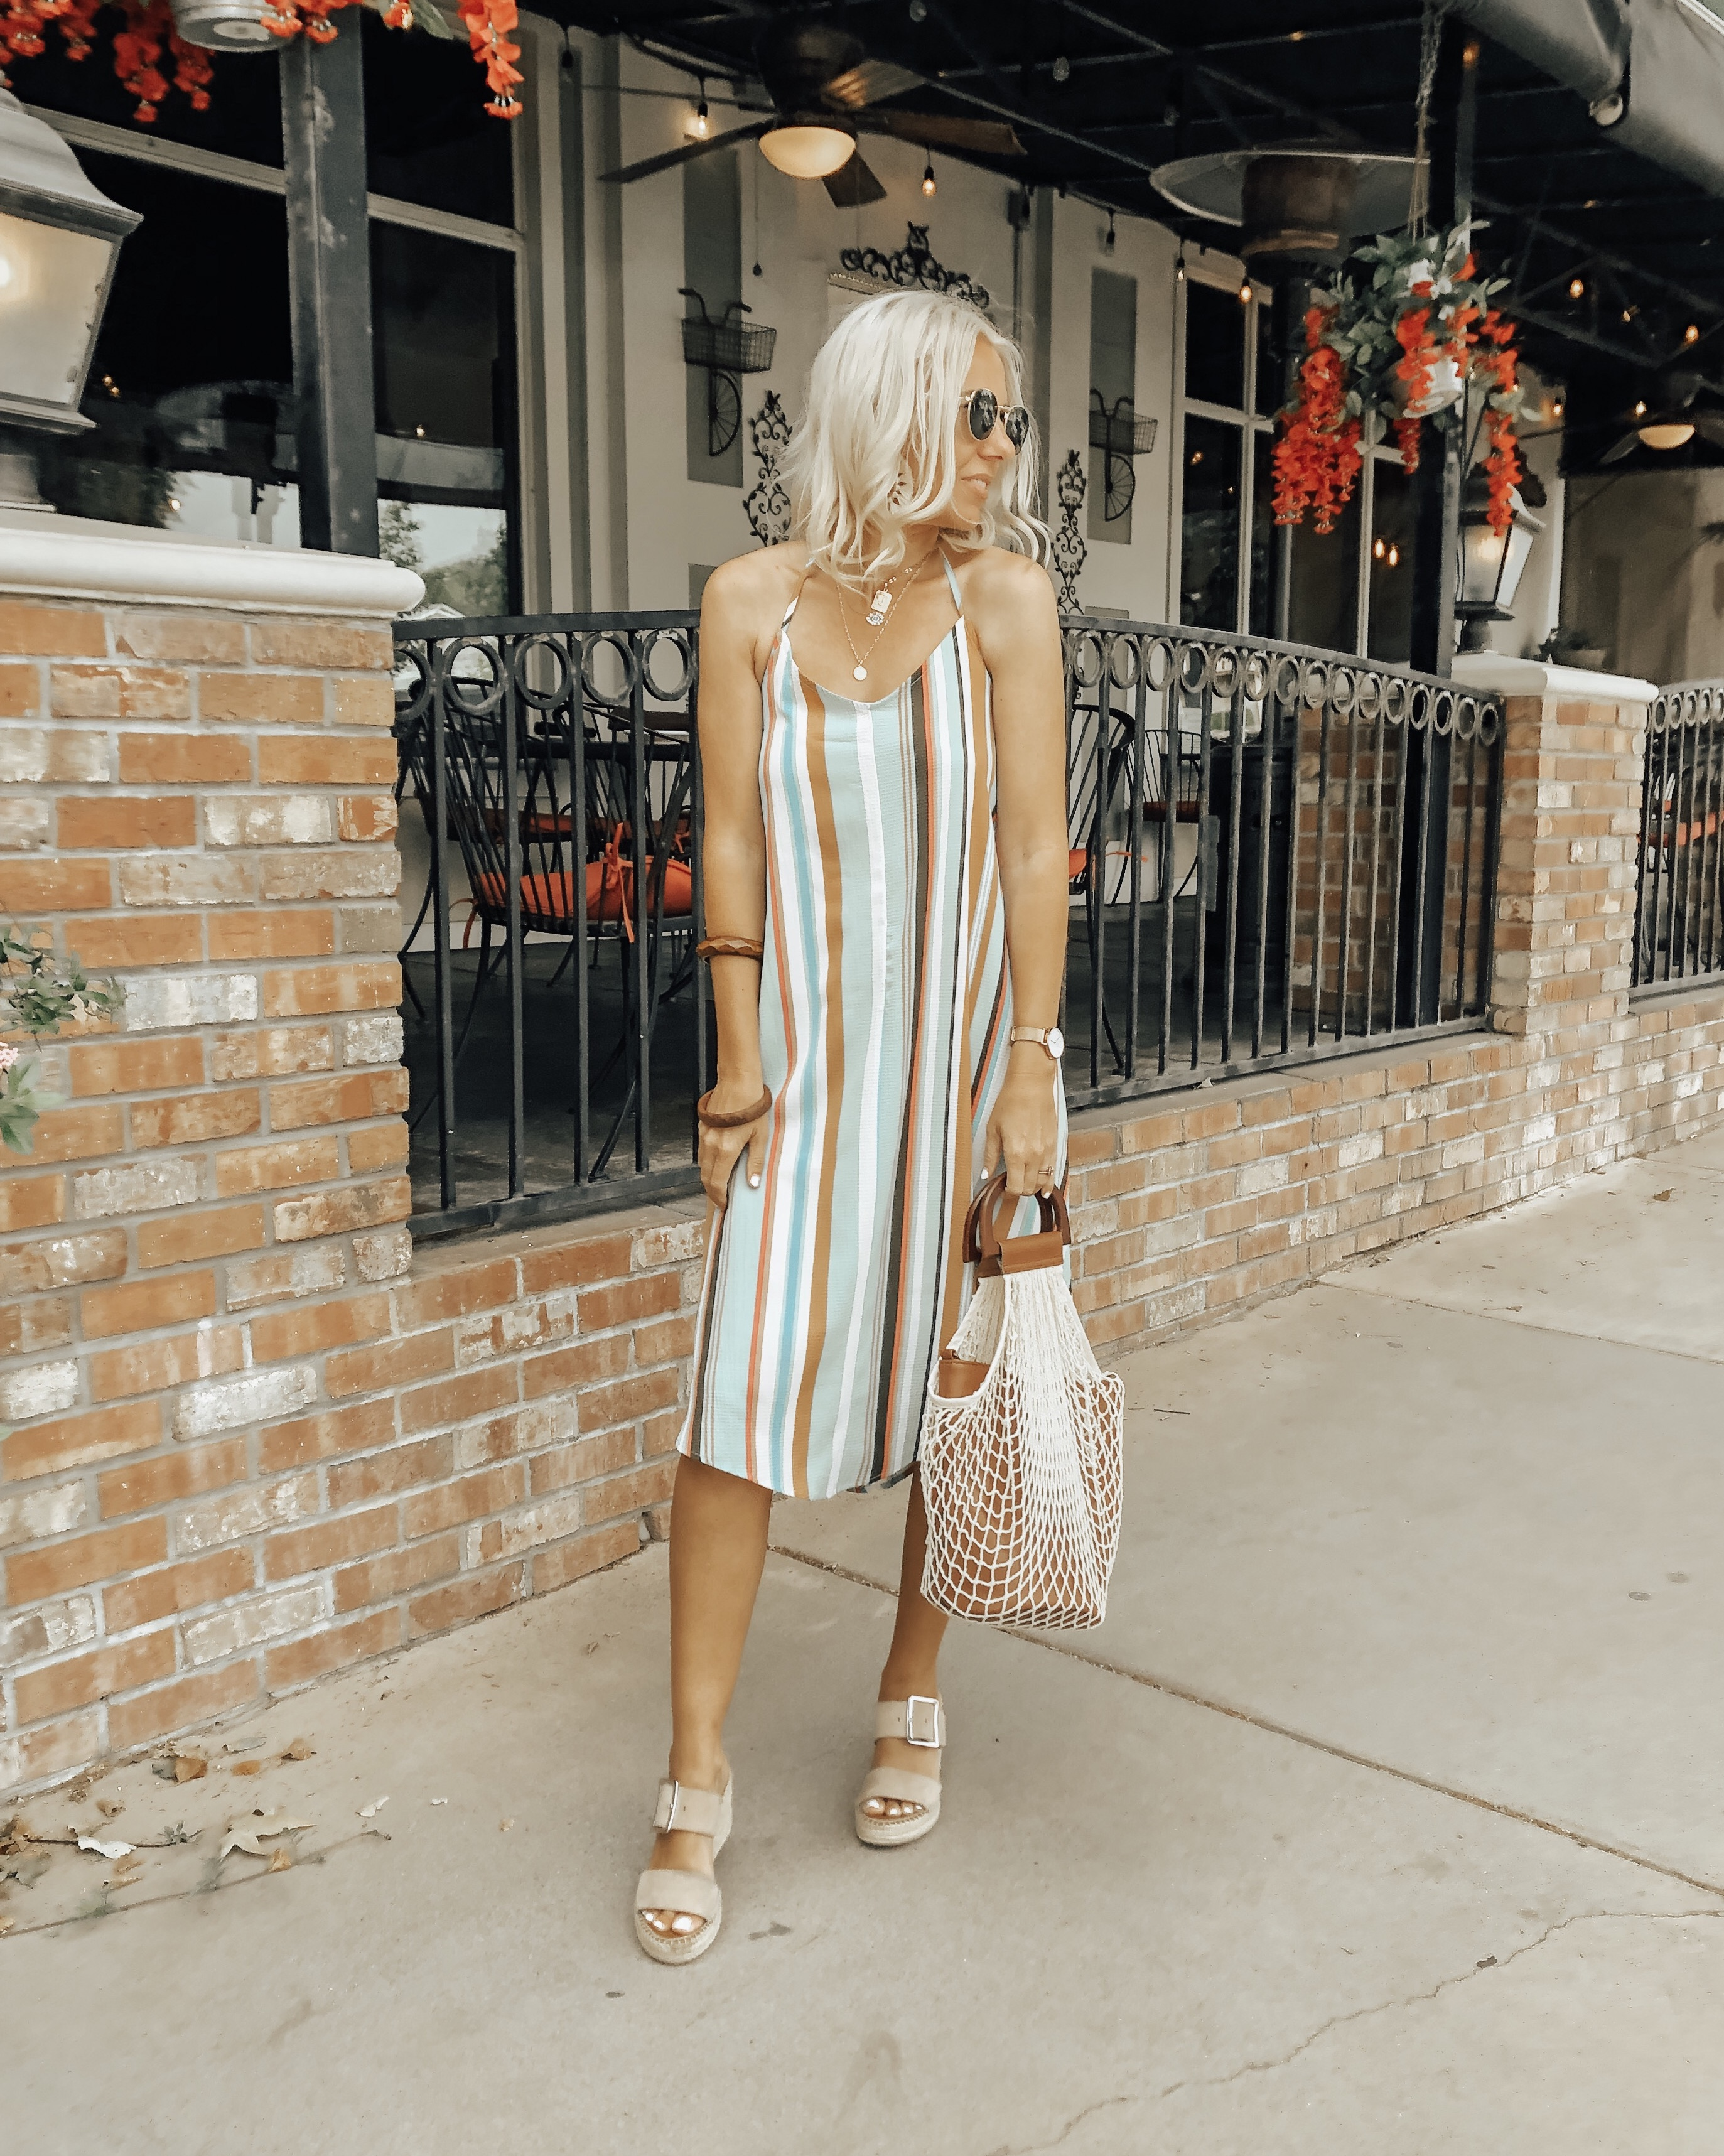 SUMMER DRESSES UNDER $40 FROM WALMART- Jaclyn De Leon Style + Summer is officially here and if you haven't stocked up on Summer dresses nows the time. Sharing all the best affordable dresses to wear now